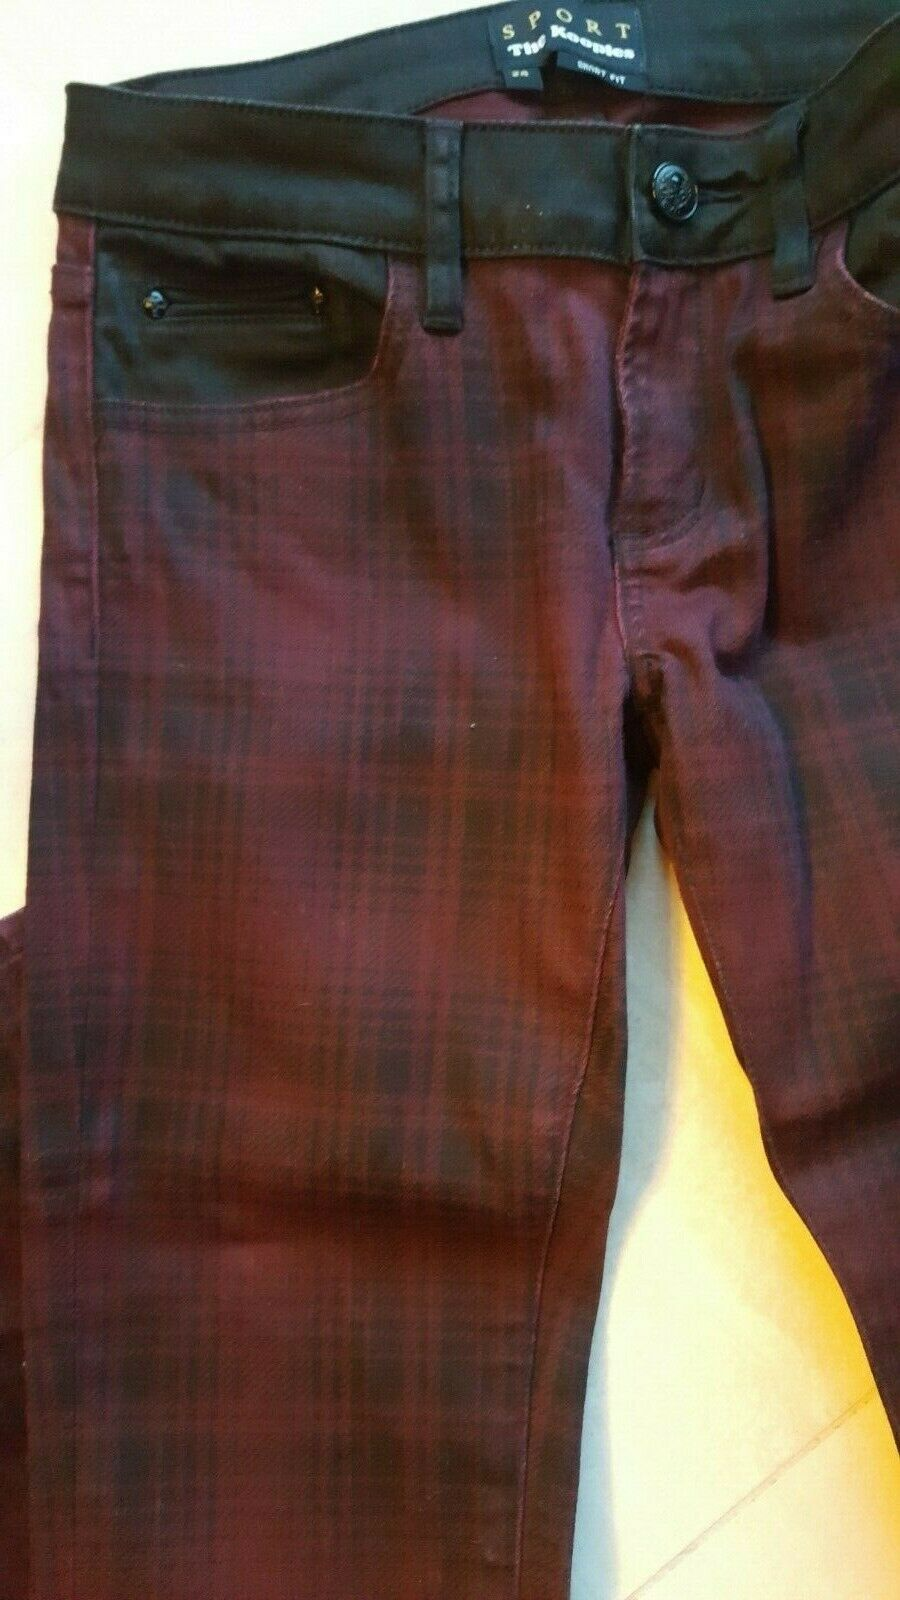 PANTALON SLIM THE KOOPLES BORDEAUX TARTAN size 24